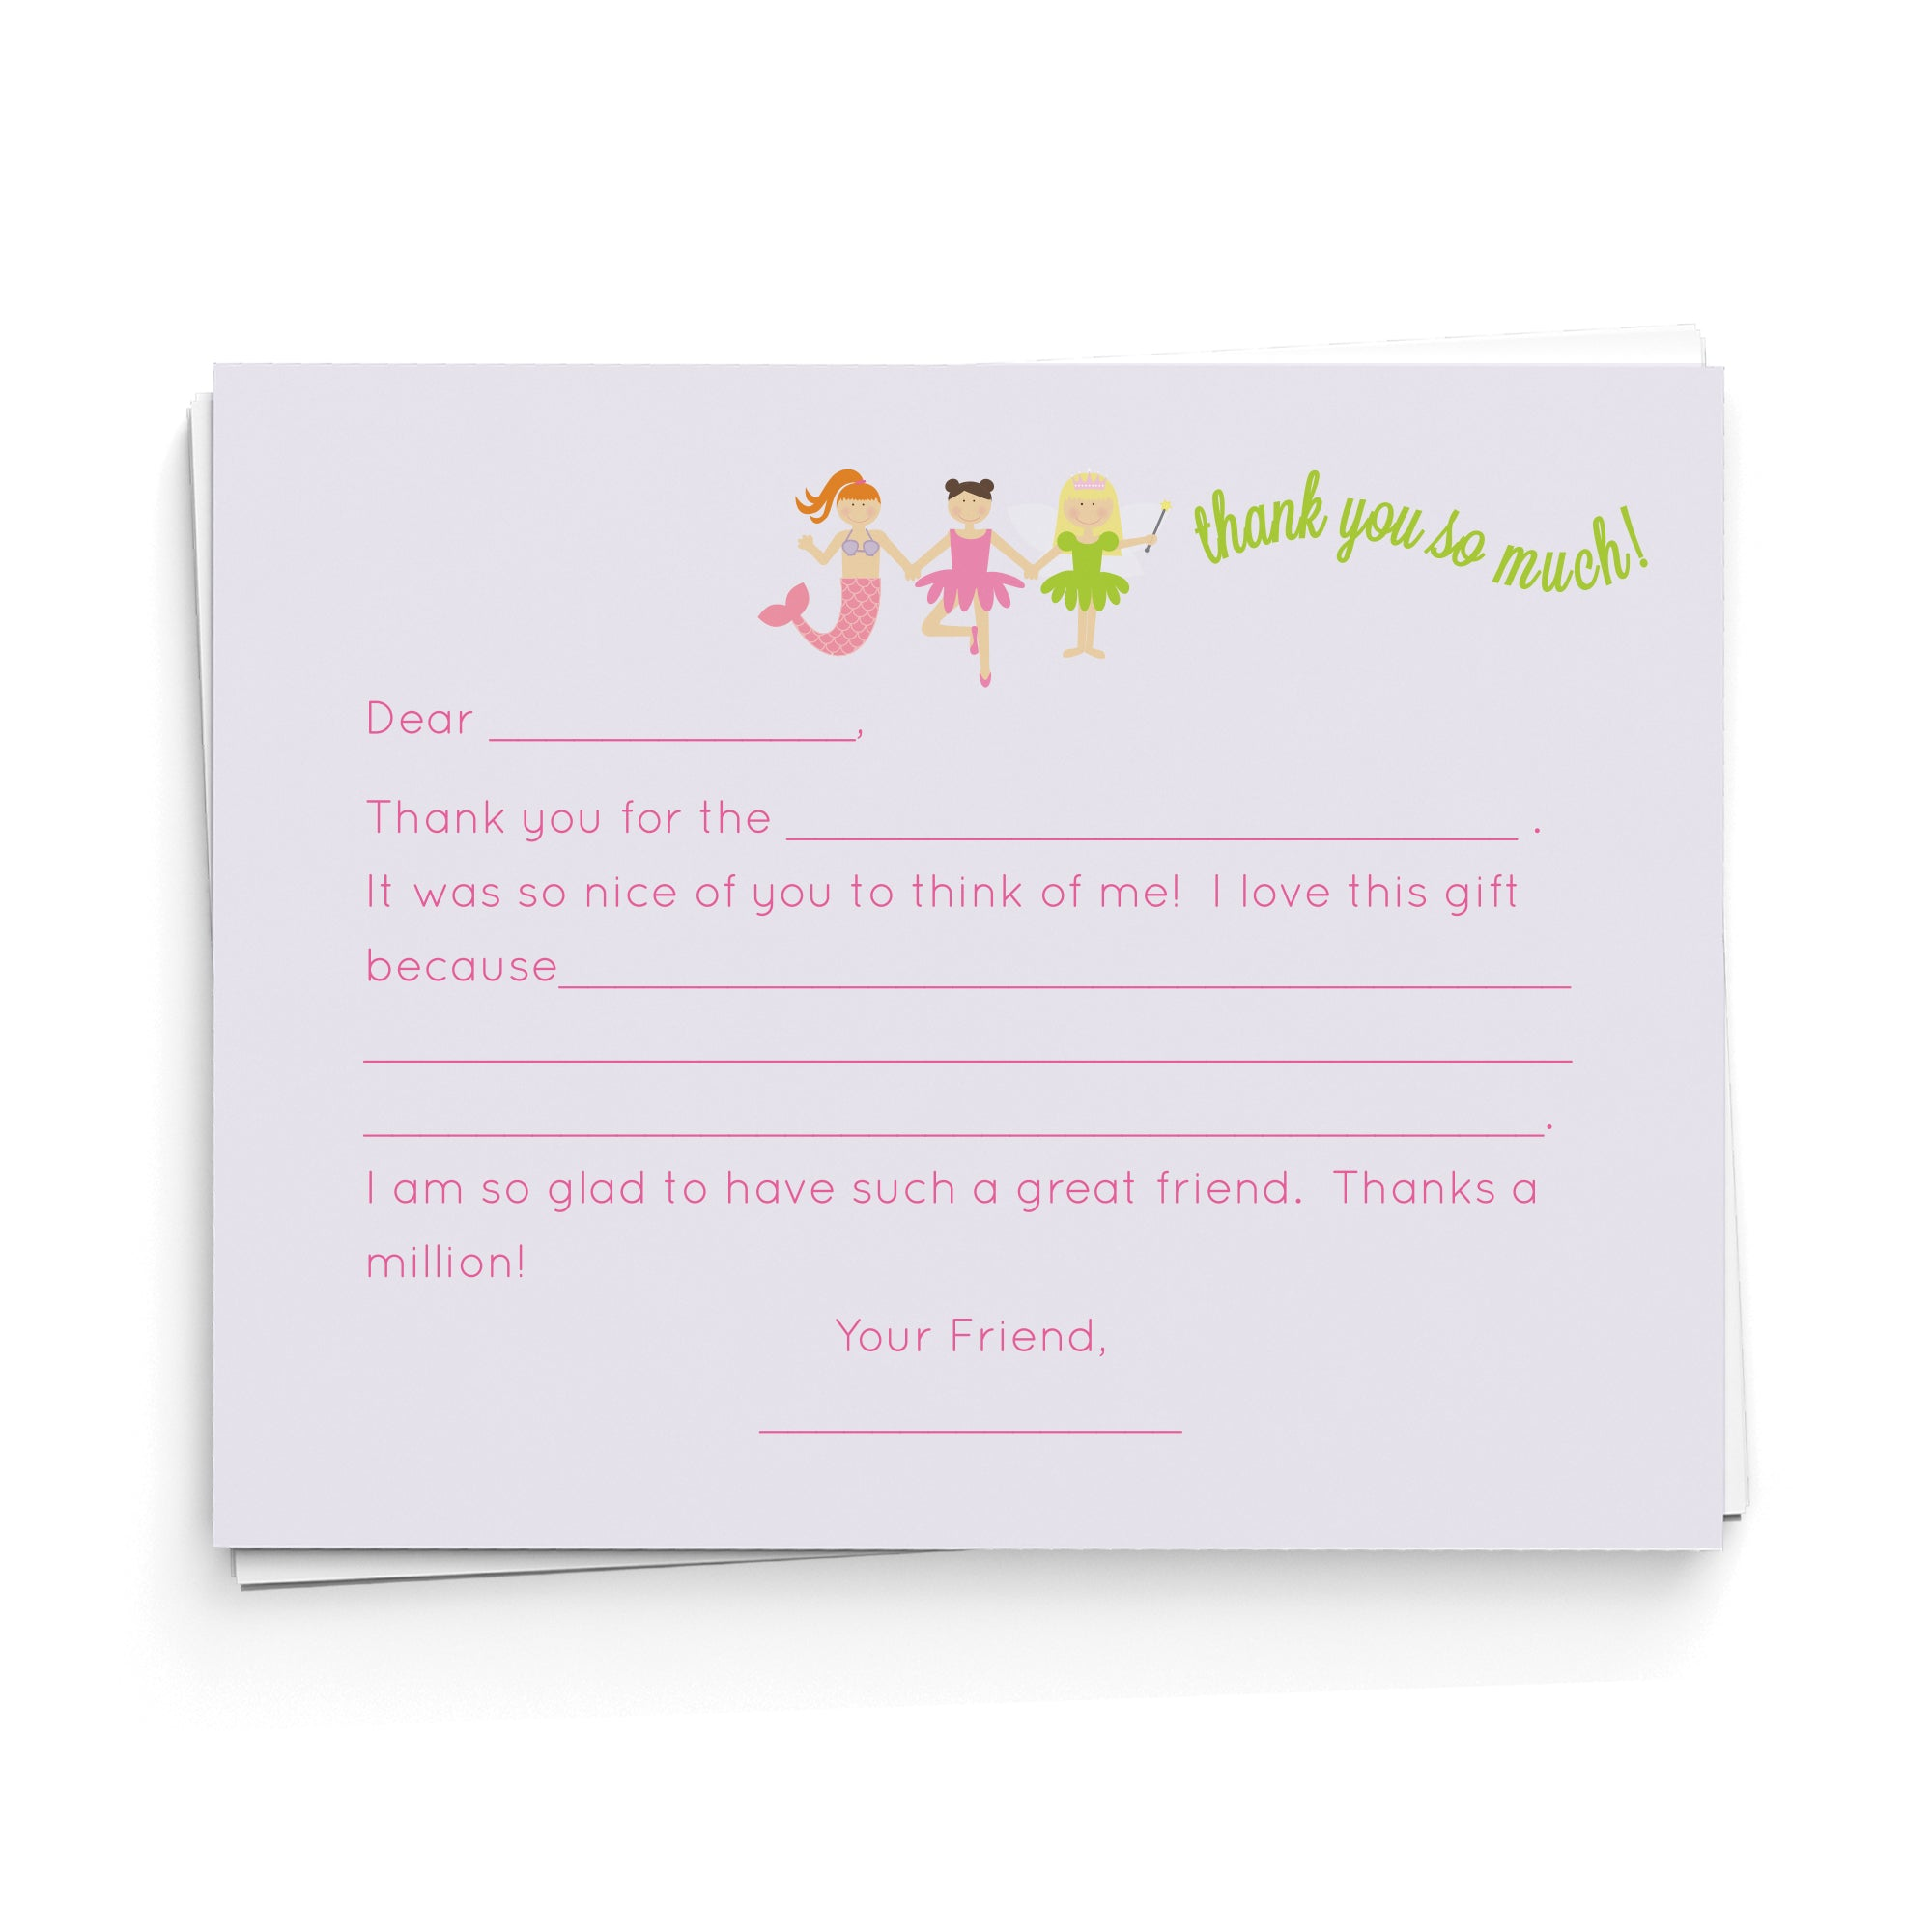 Princess Lineup Fill-in-the-Blank Thank You Cards